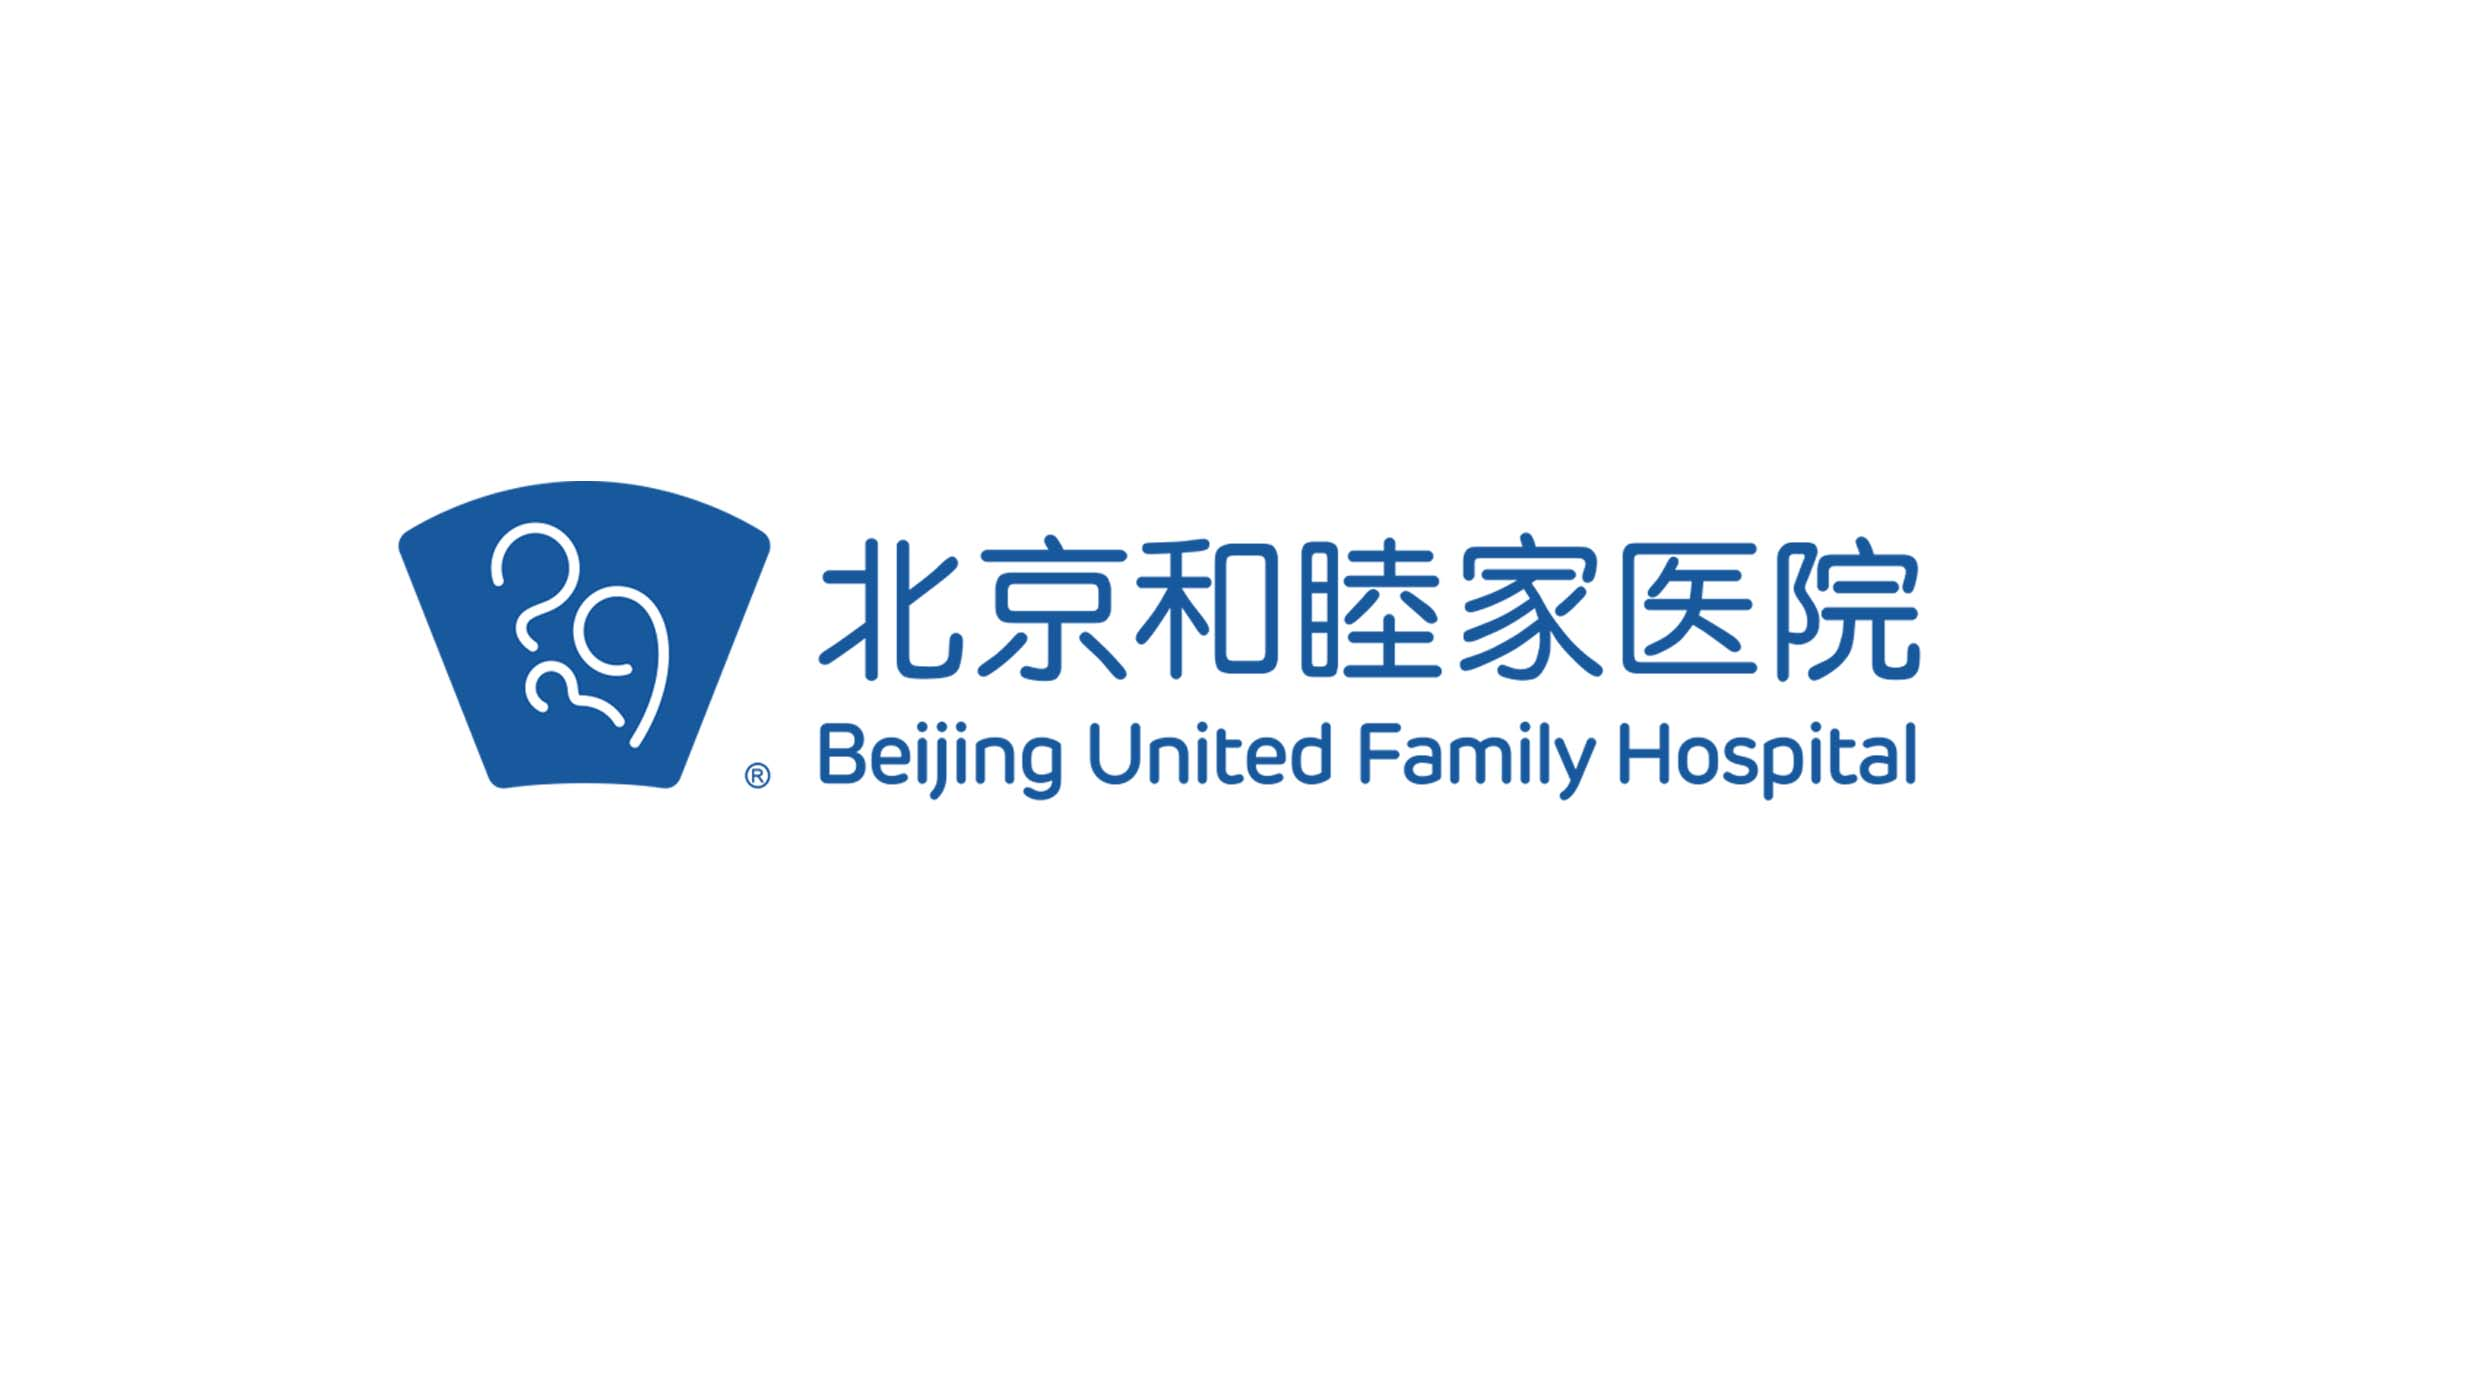 Beijing-United-Family-Hospital--special-thanks.jpg